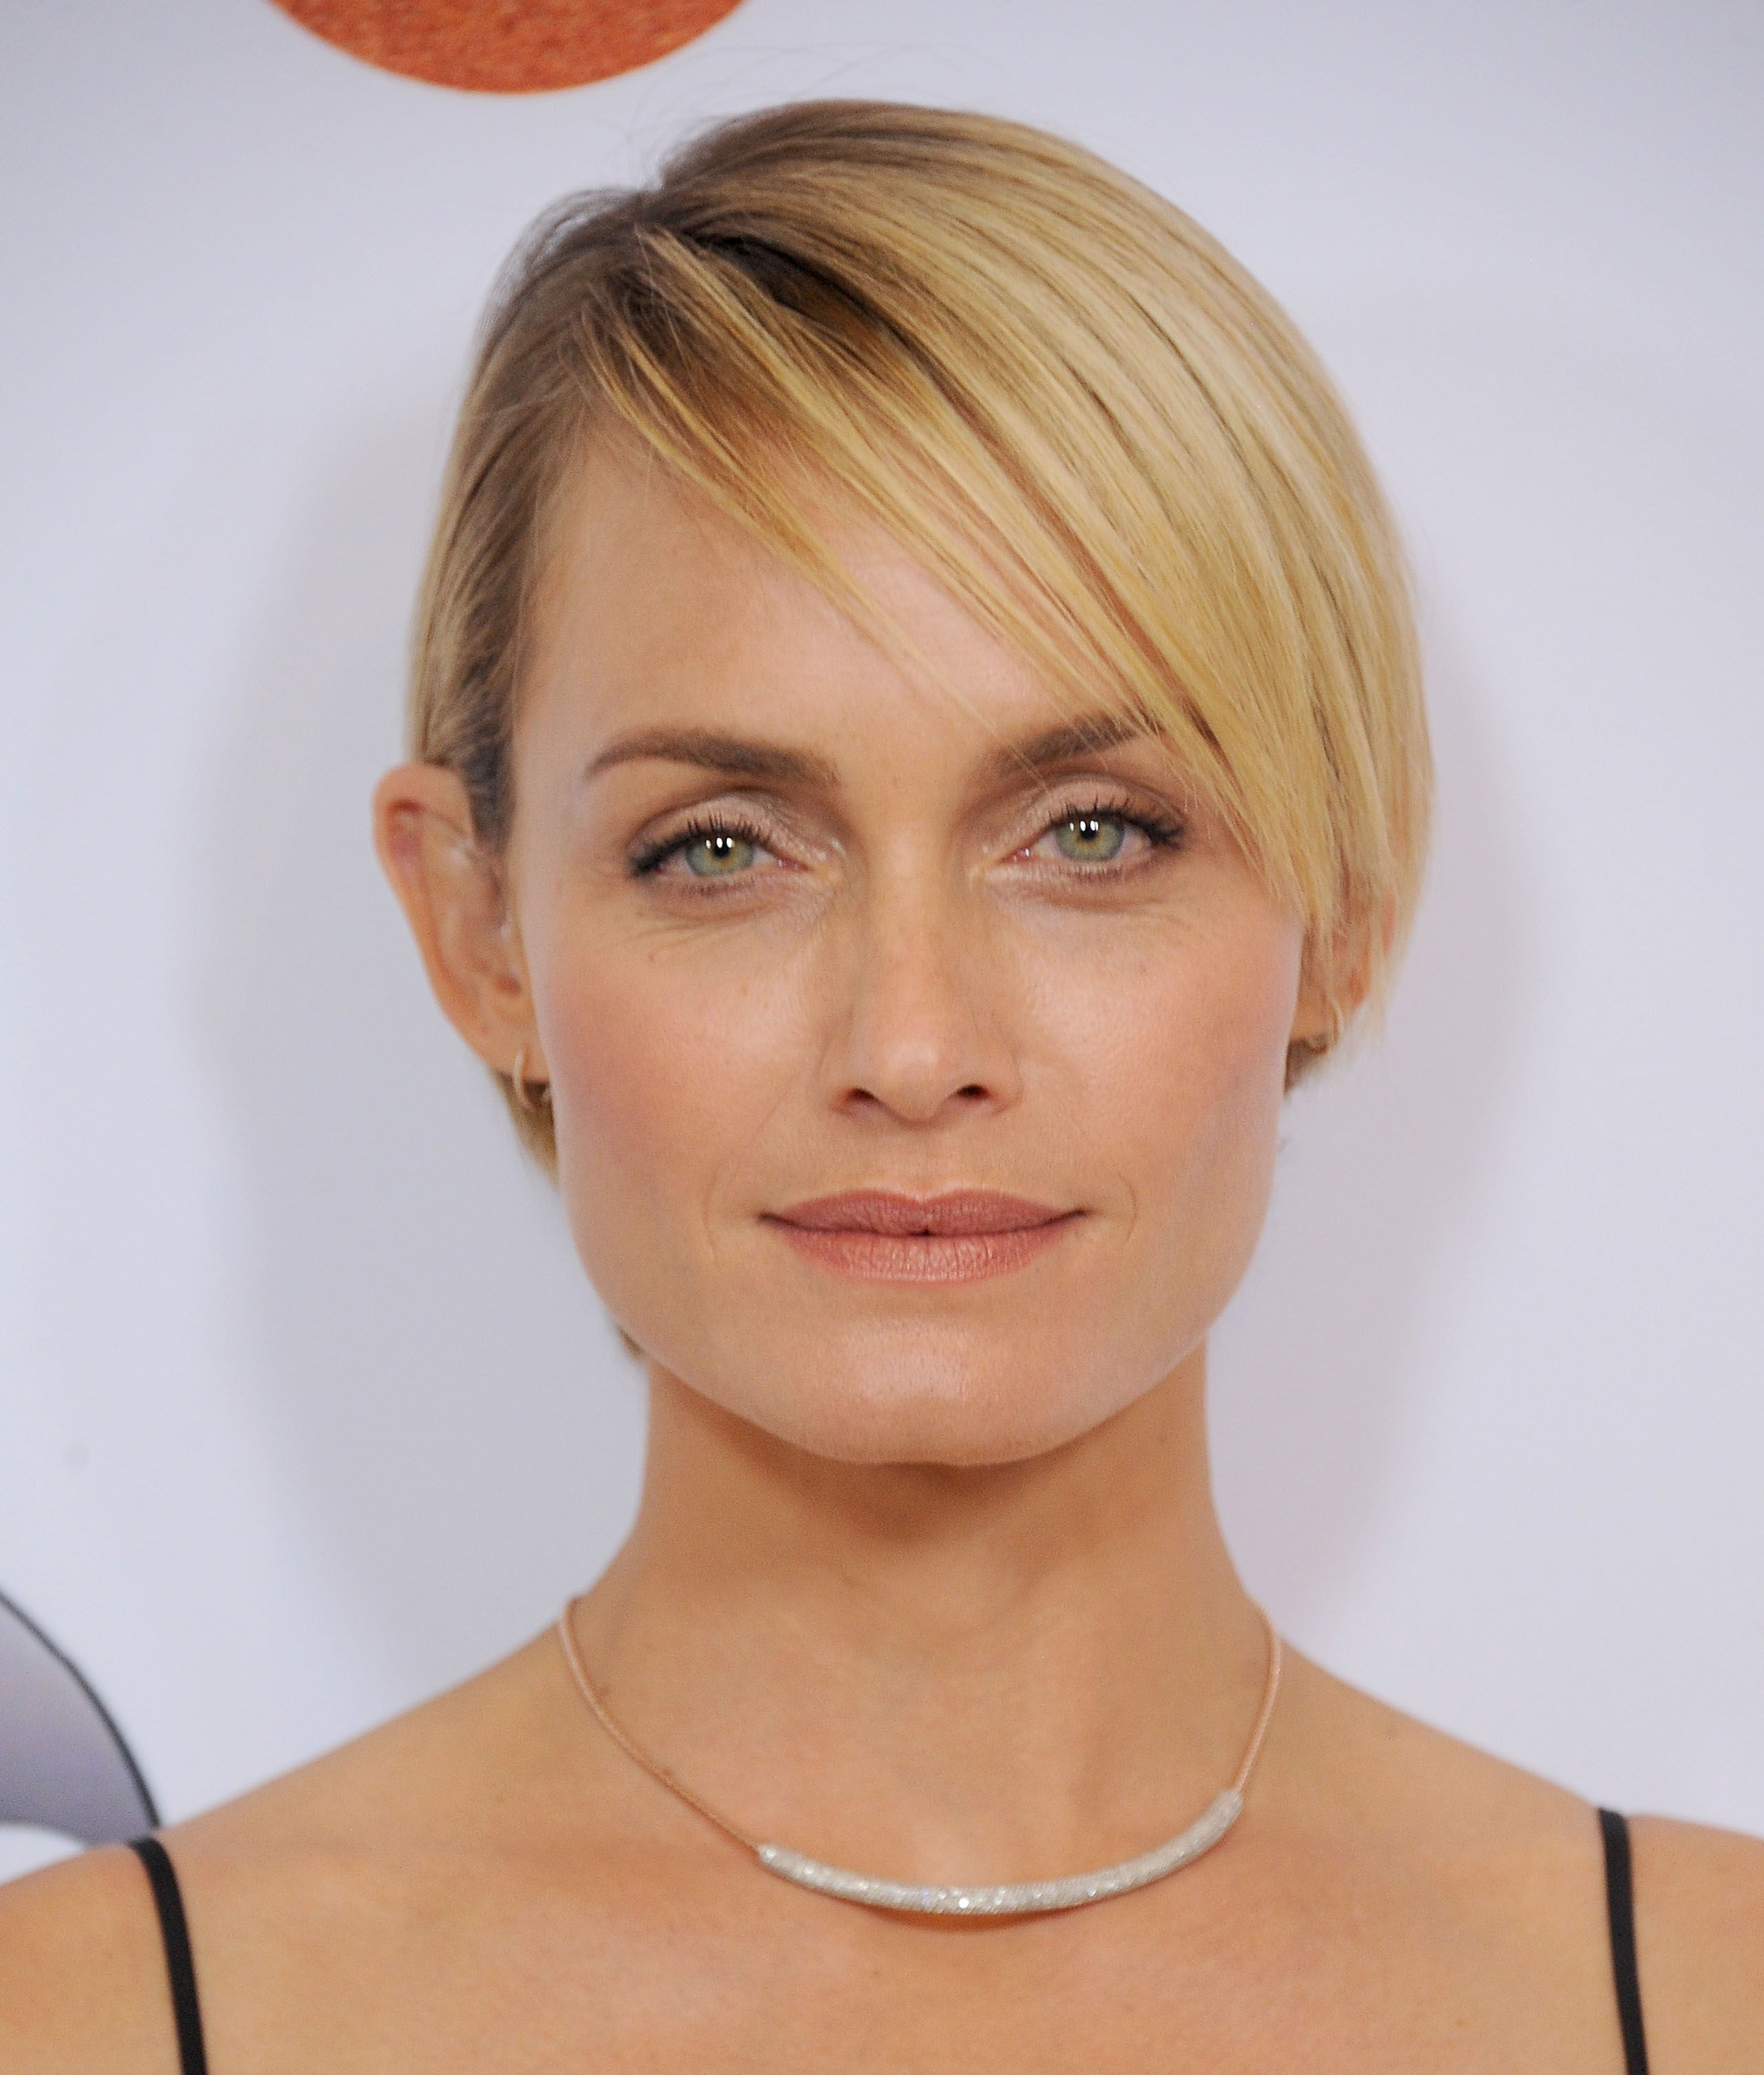 65 Best Short Hairstyles, Haircuts, And Short Hair Ideas For 2018 Pertaining To Short Hairstyles For Women Over 40 With Thin Hair (View 22 of 25)